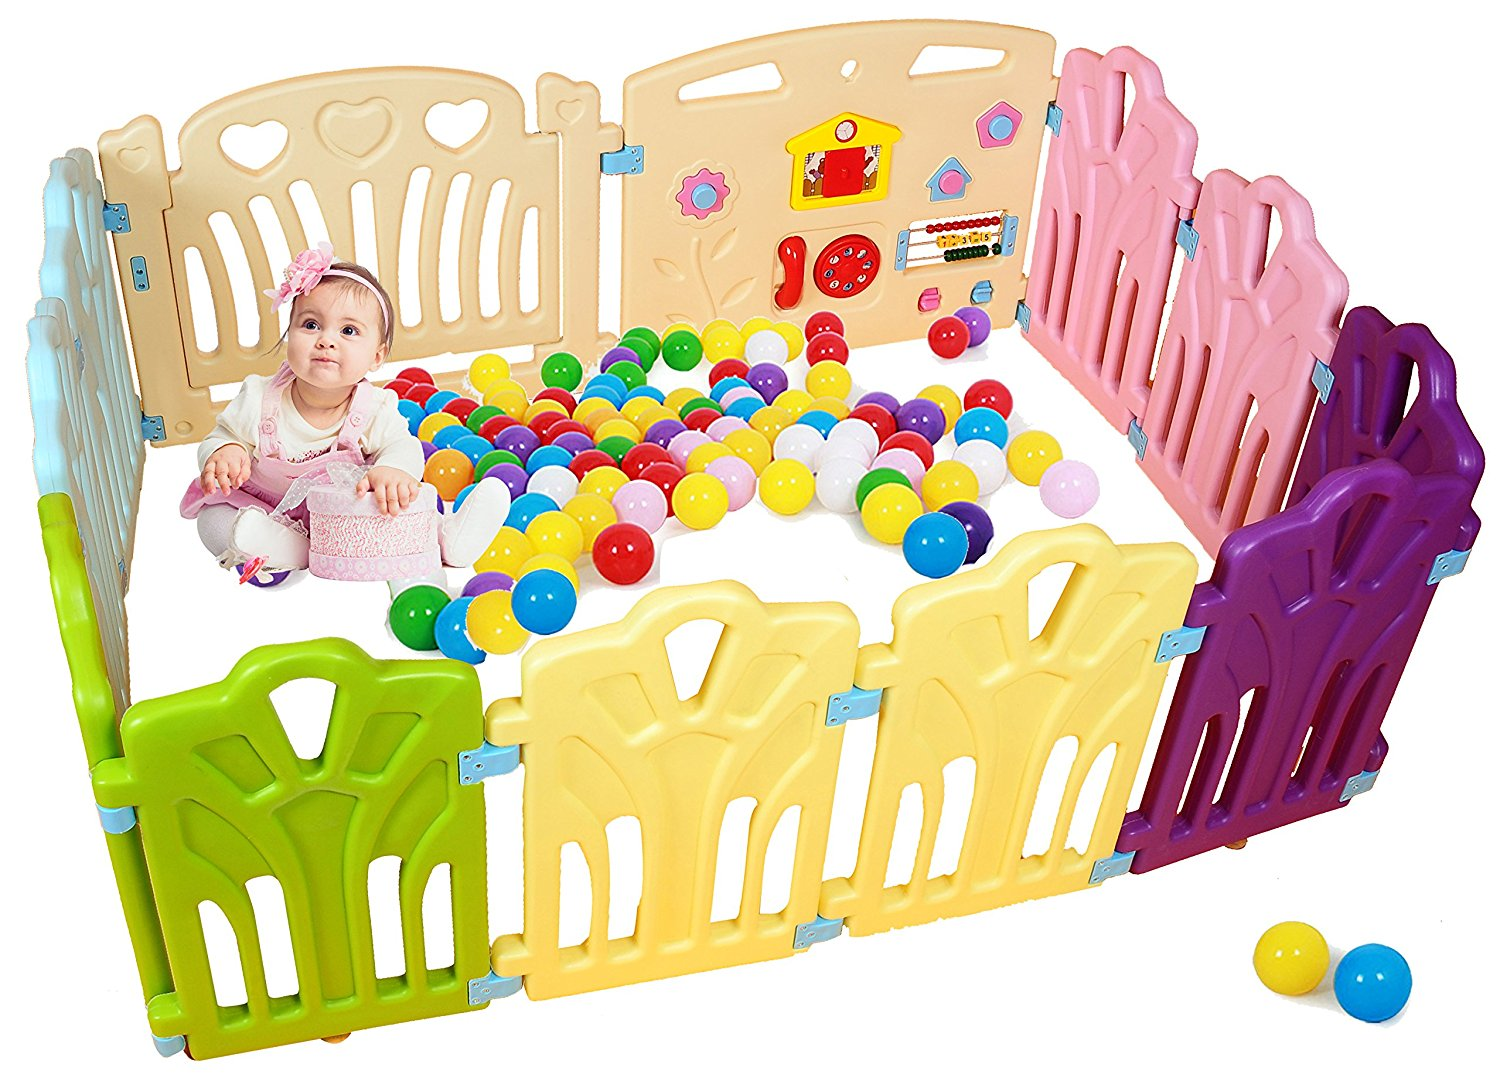 Baby Playpen Kids Activity Centre Safety Play Pen Home Indoor Outdoor Portable Pen (multicolour, Classic set... by PENSON %26 CO.